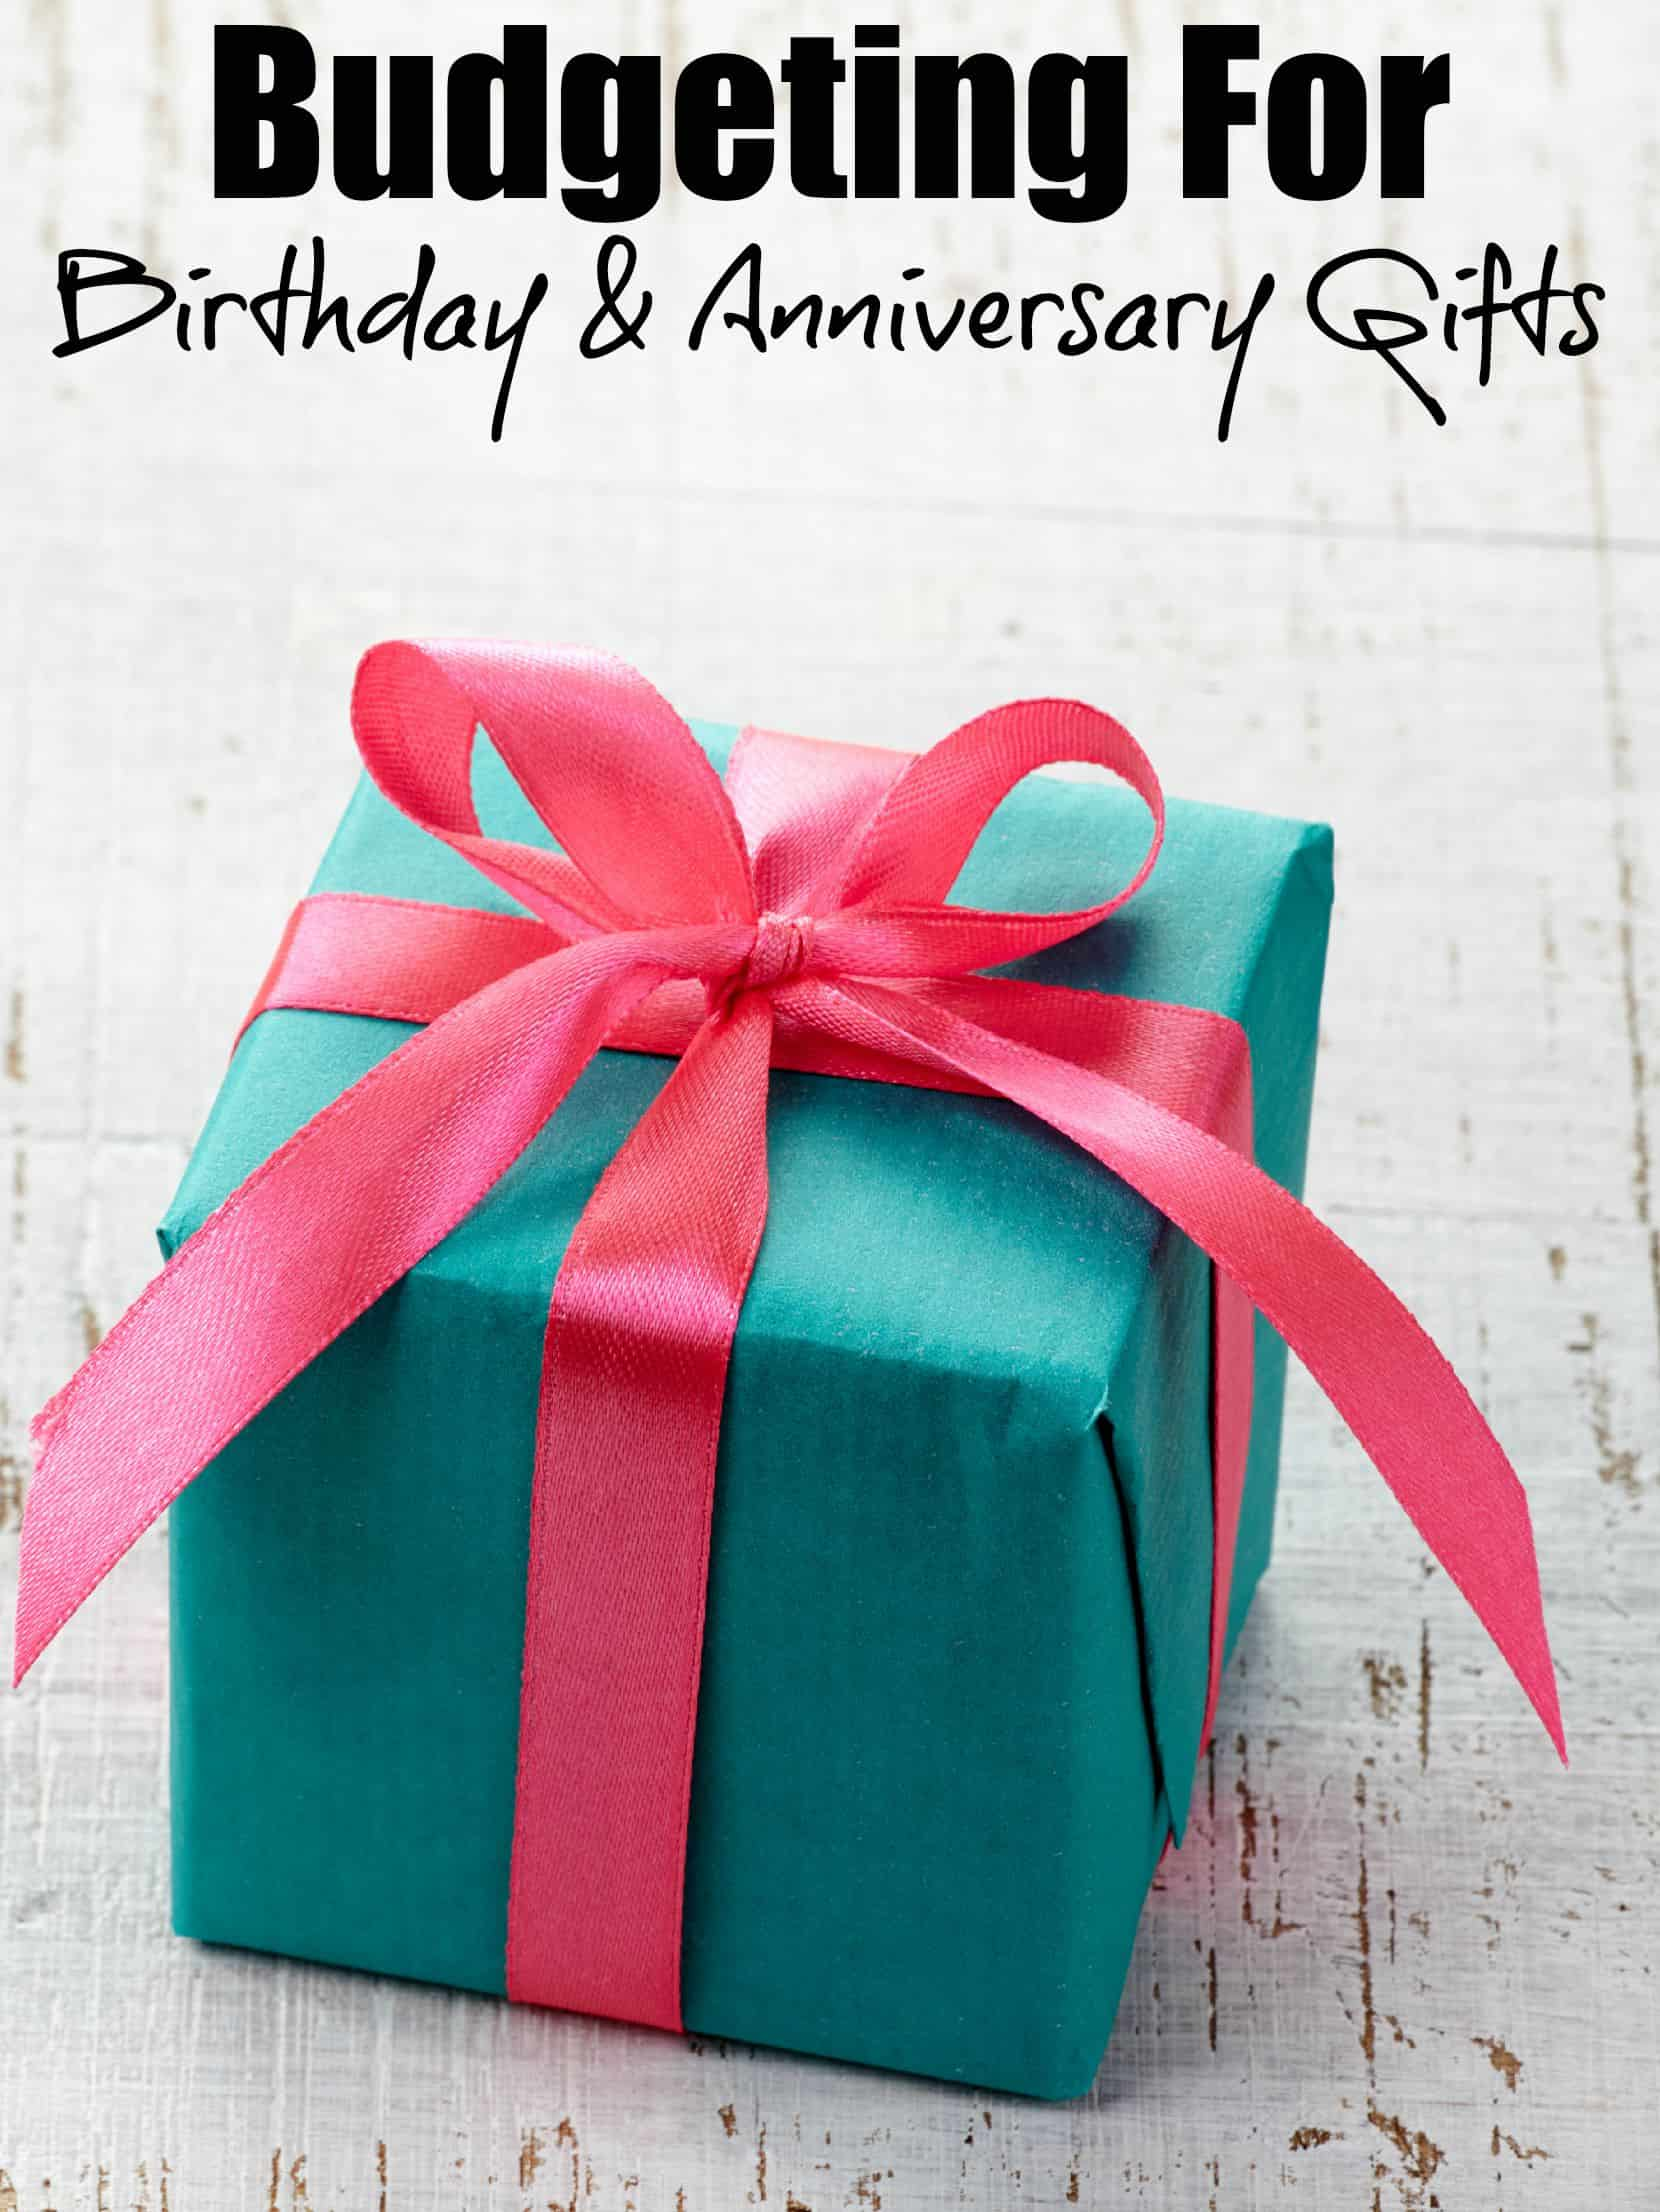 The Best Ways To Save Money For Birthday Anniversary Gifts